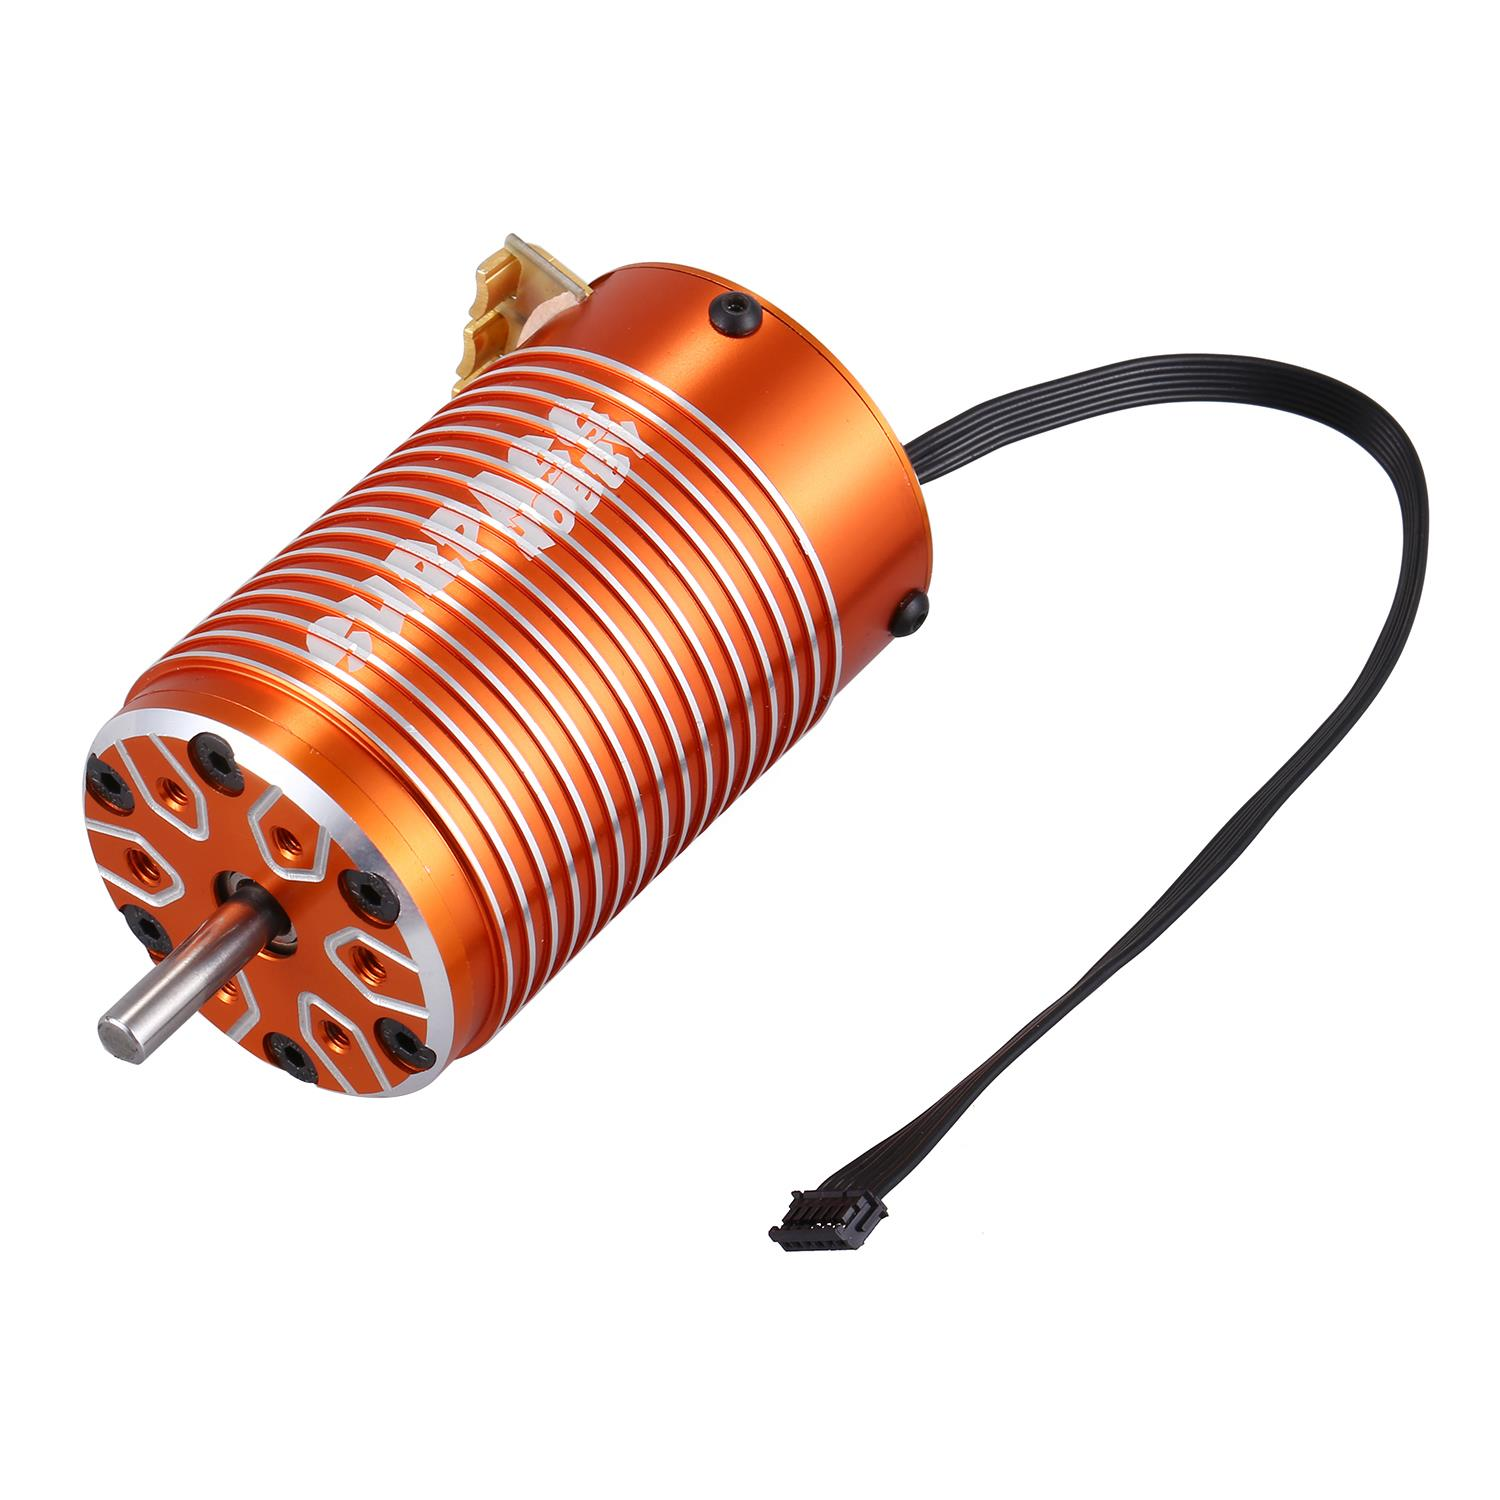 SURPASS HOBBY 4268 2650KV 4 Poles Sensored Brushless Motor for 1/8 RC Racing Car Truck Truggy On Road